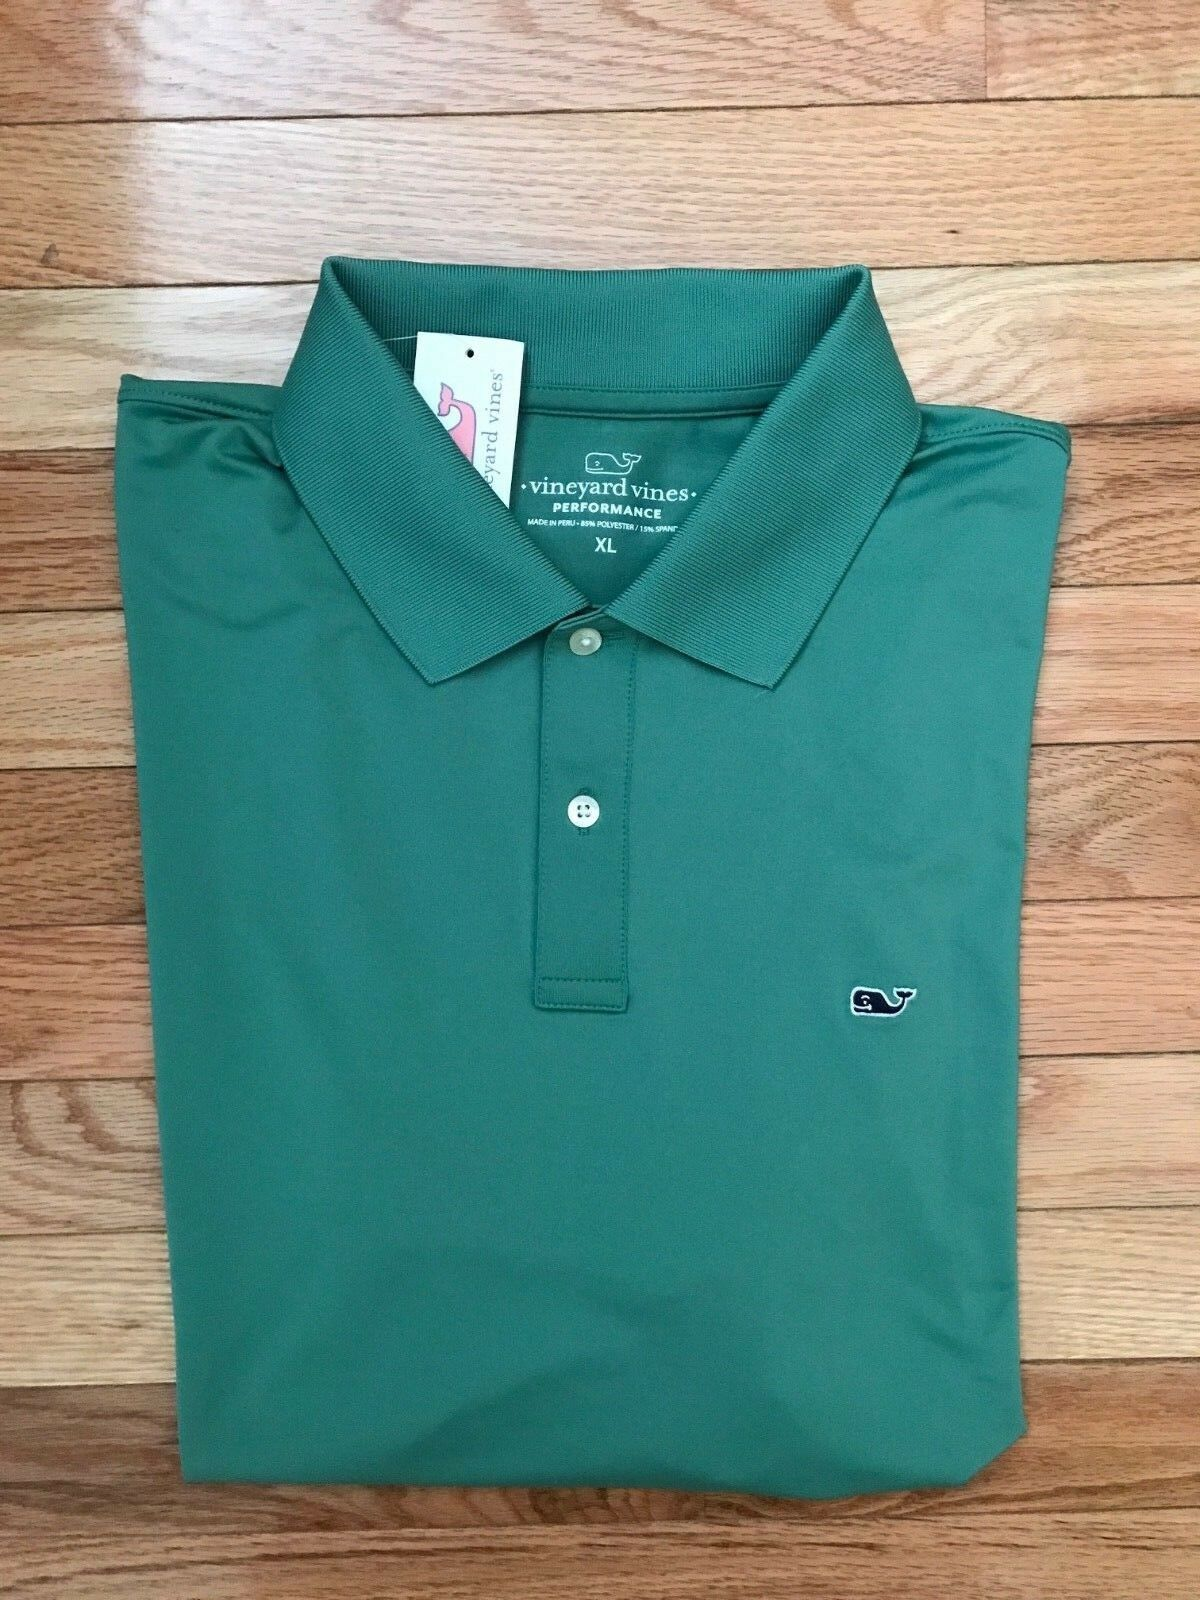 NWT Vineyard Vines Starboard Green L S Slim Fit Performance Polo  A99